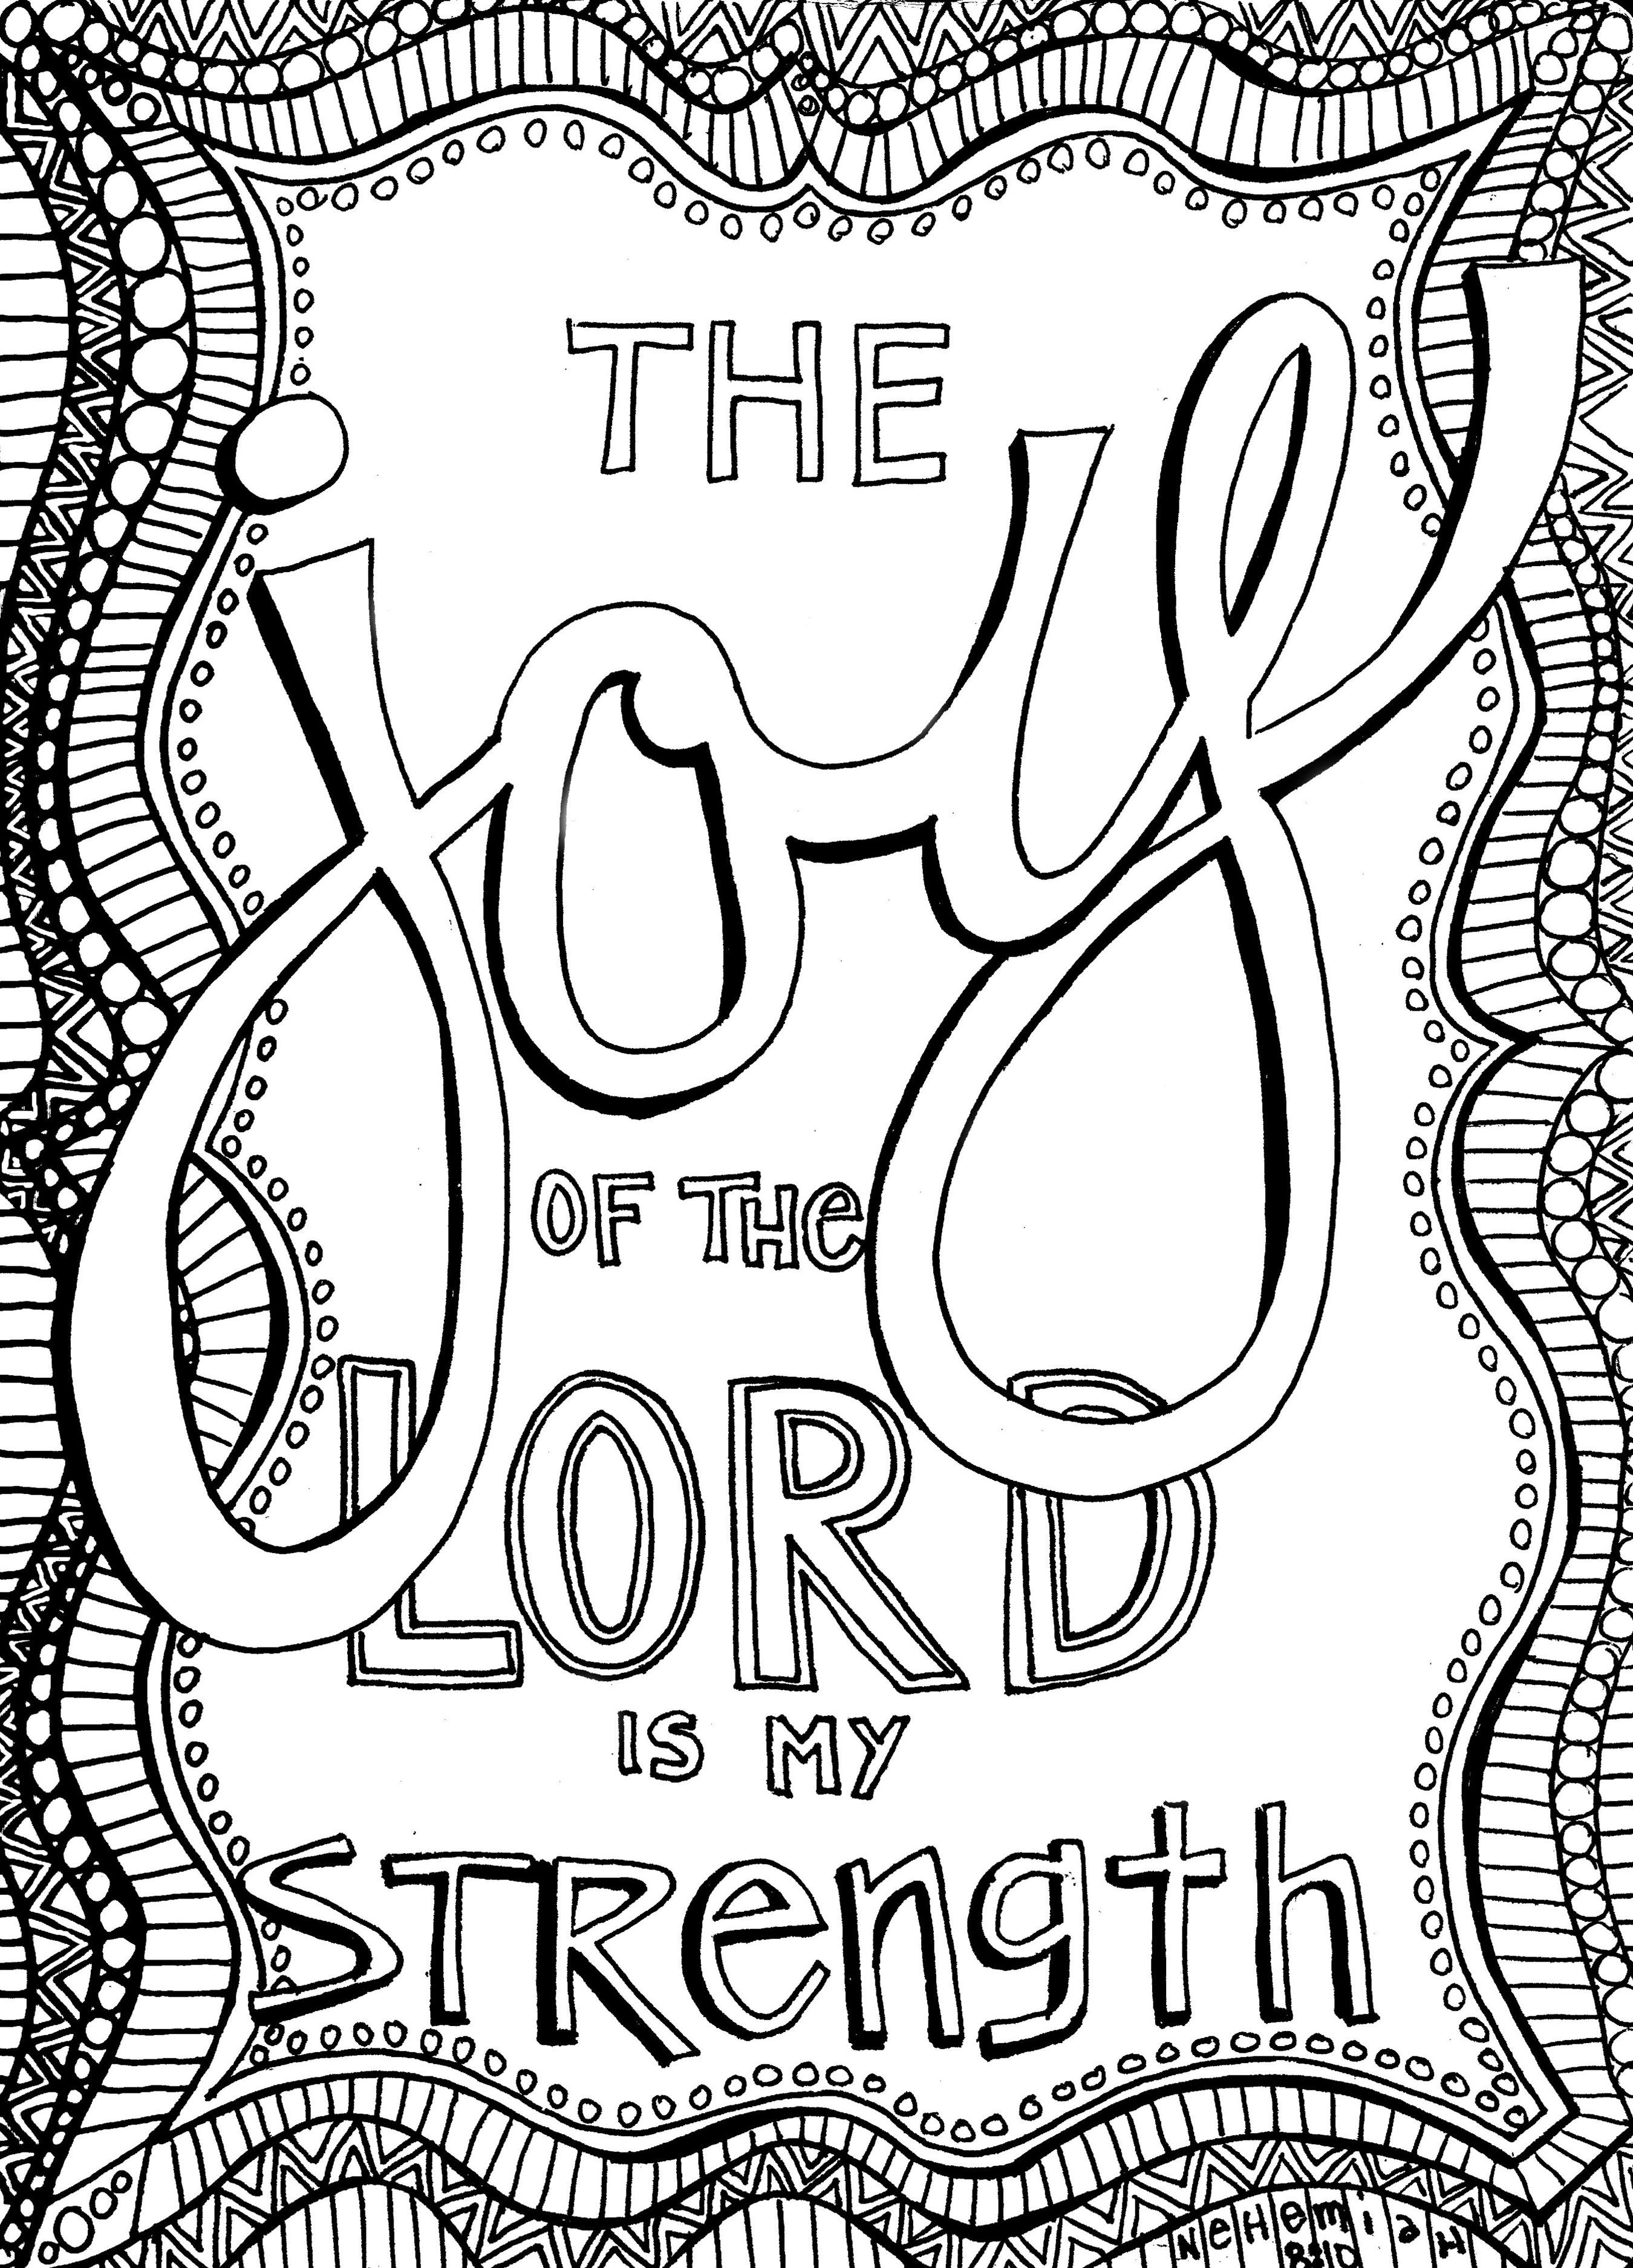 Free Christian Coloring Pages For Adults Roundup Joditt Designs Christian Coloring Book Bible Verse Coloring Page Bible Coloring